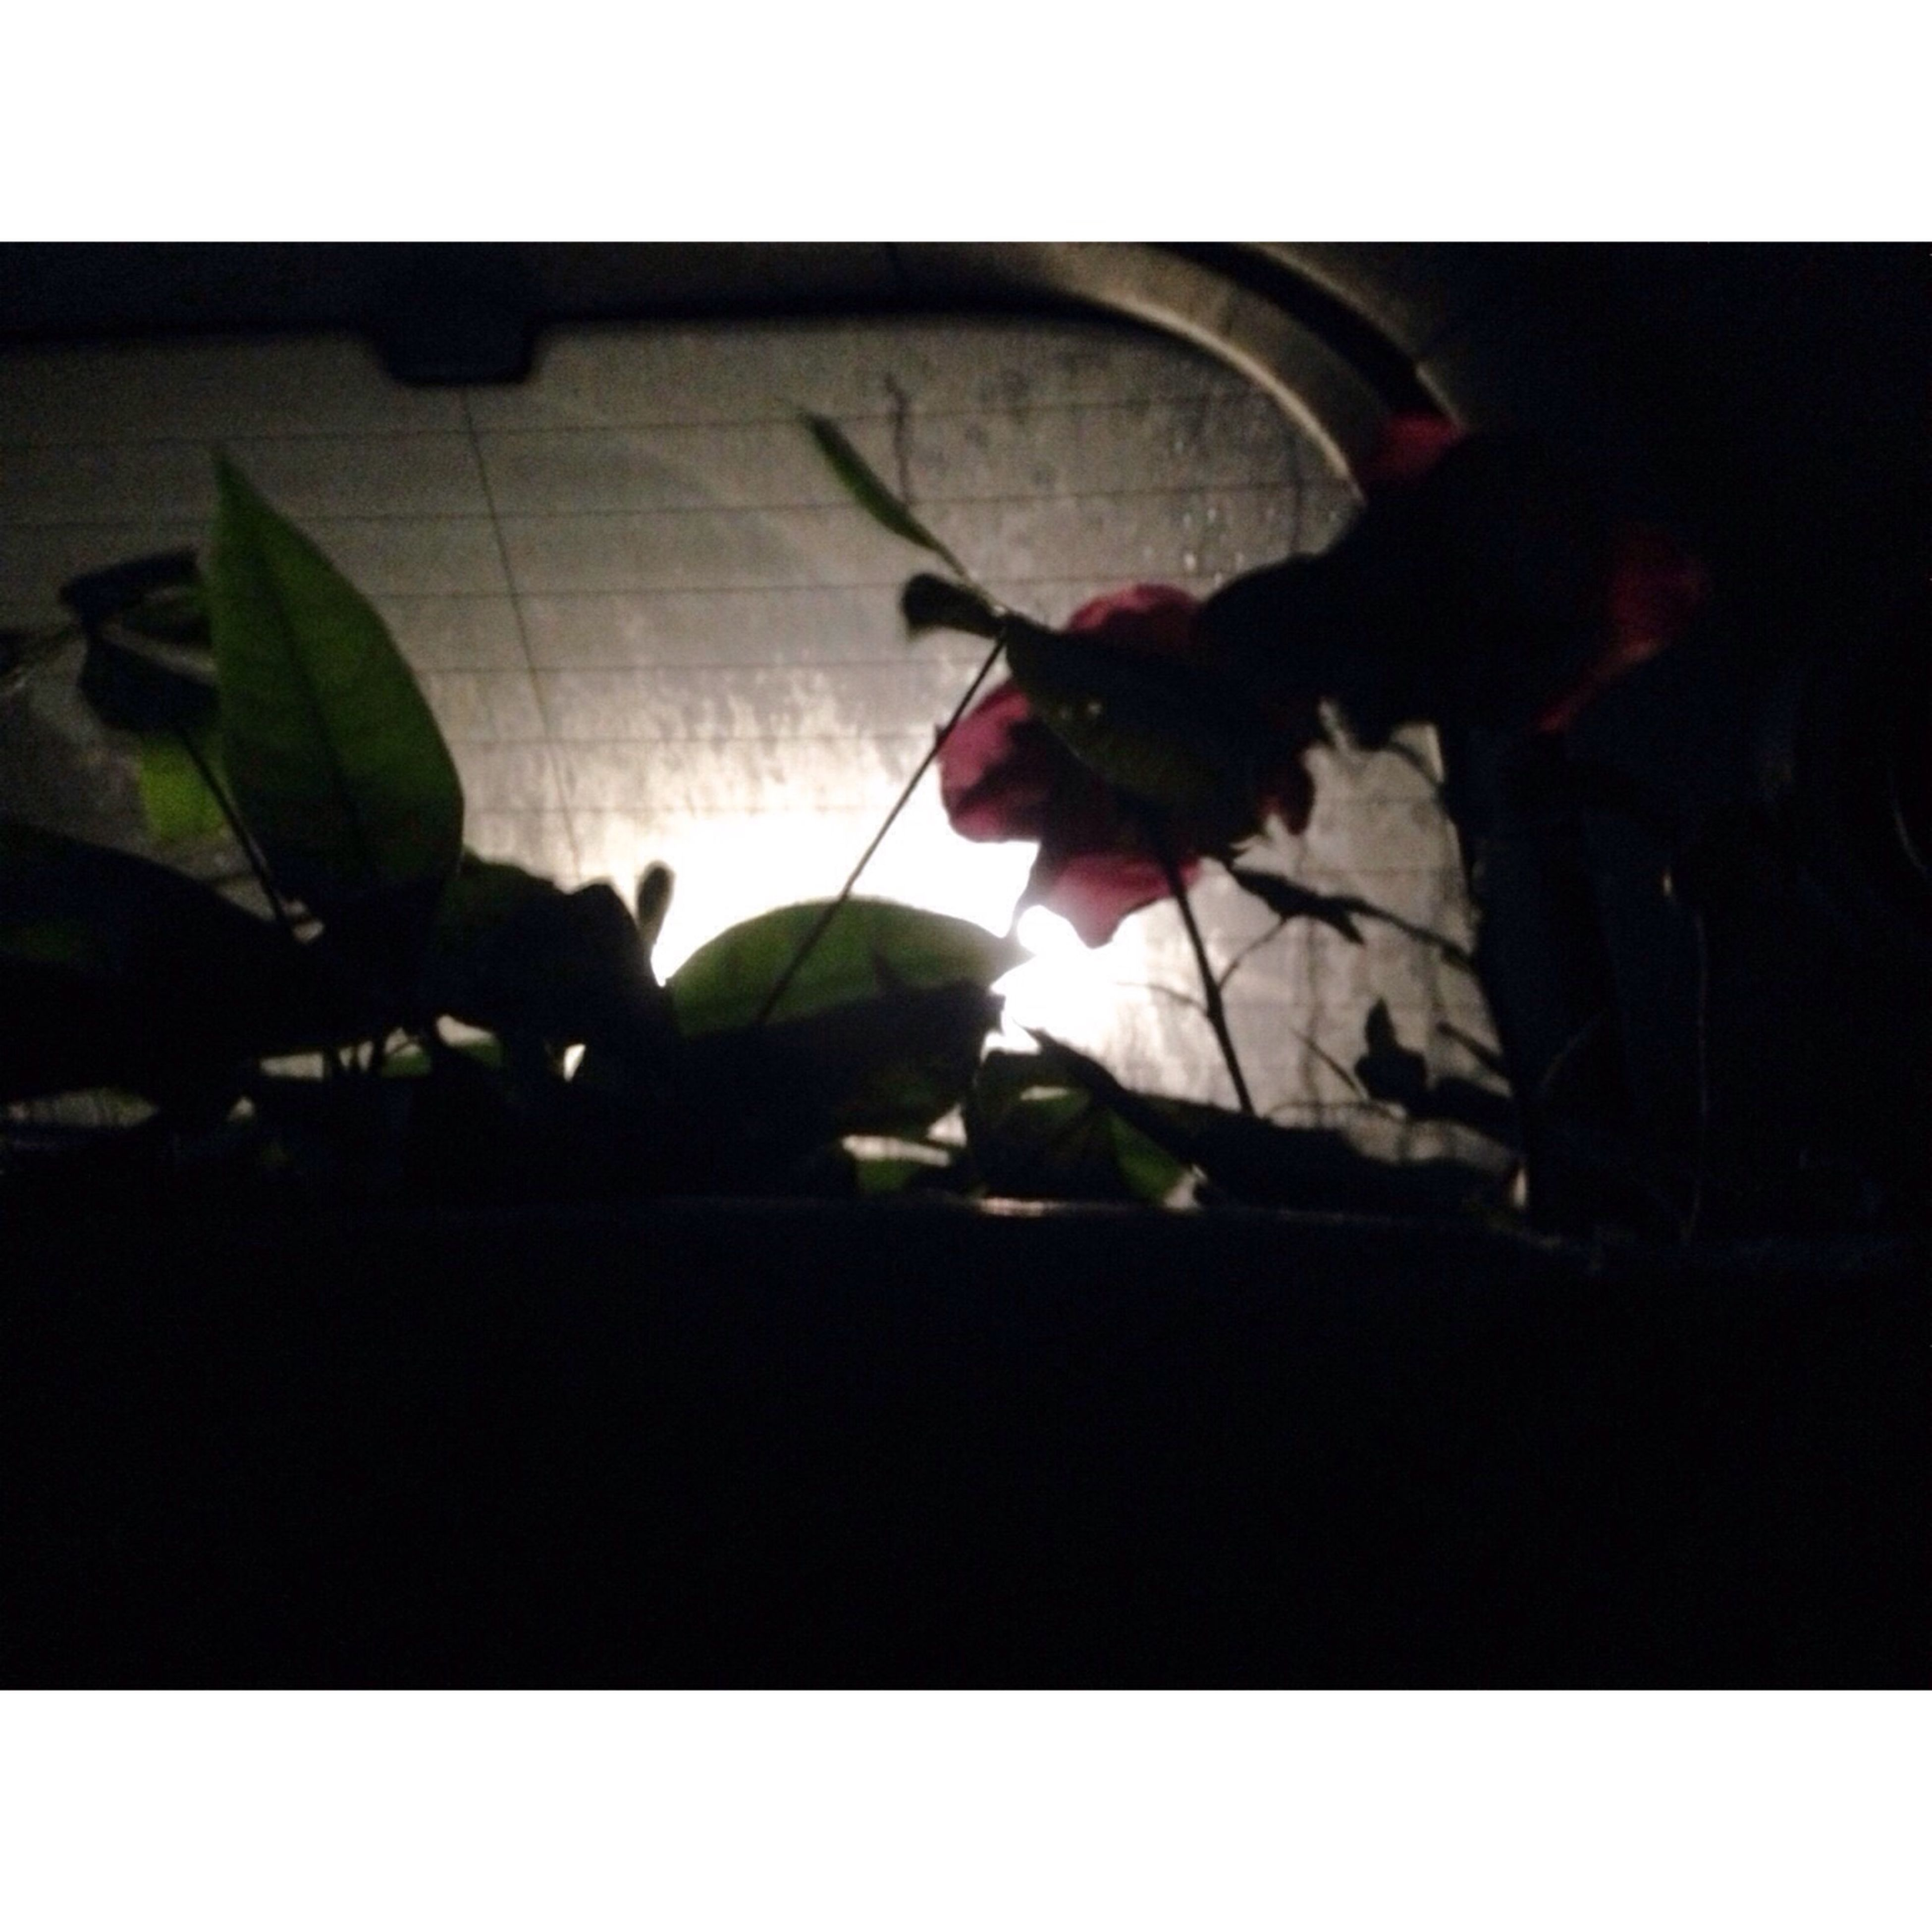 transfer print, auto post production filter, flower, plant, indoors, leaf, growth, sunlight, potted plant, shadow, wall - building feature, close-up, window, day, nature, frame, fragility, copy space